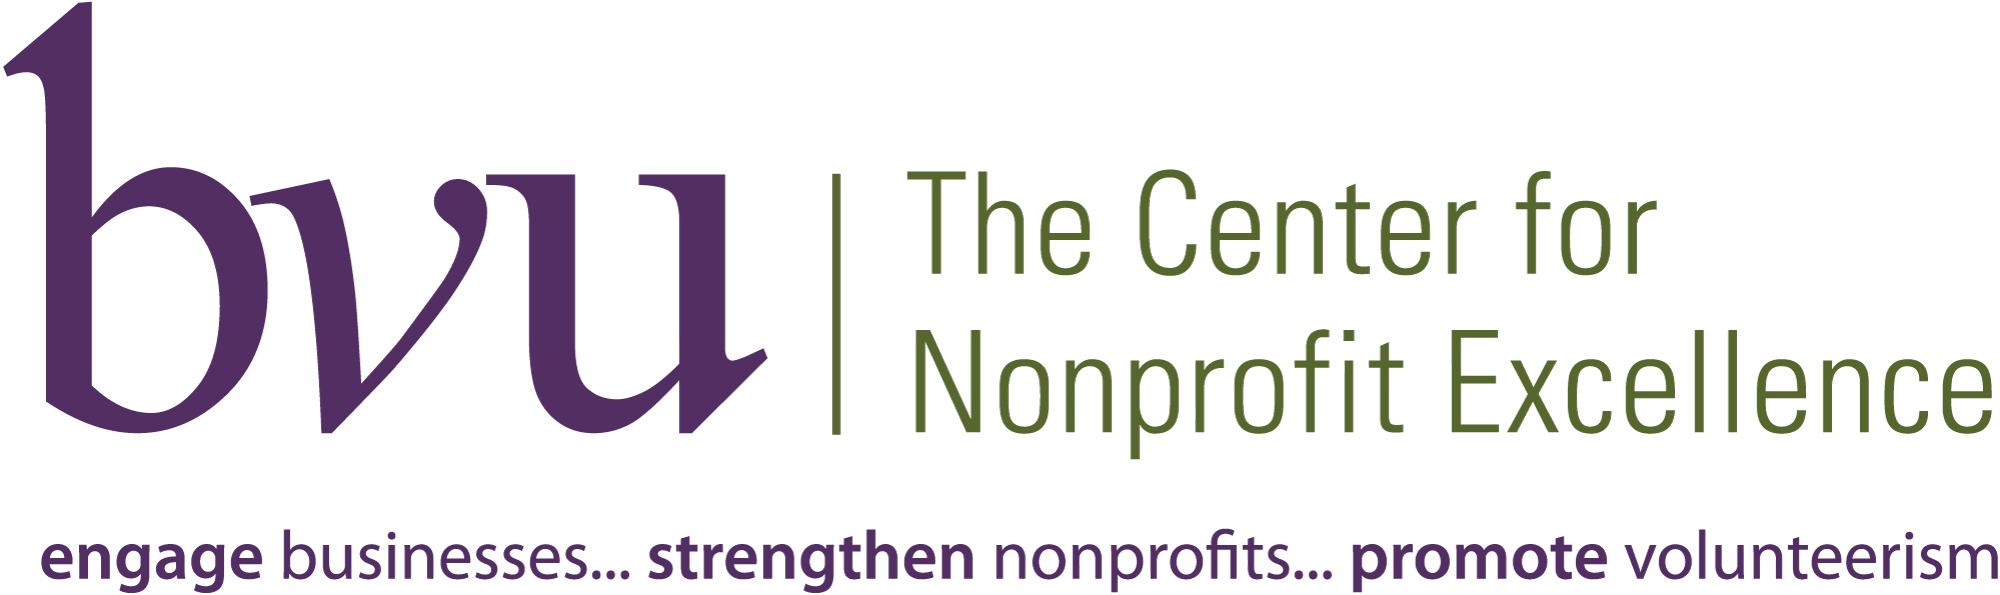 bvu nonprofit excellence pro bono week